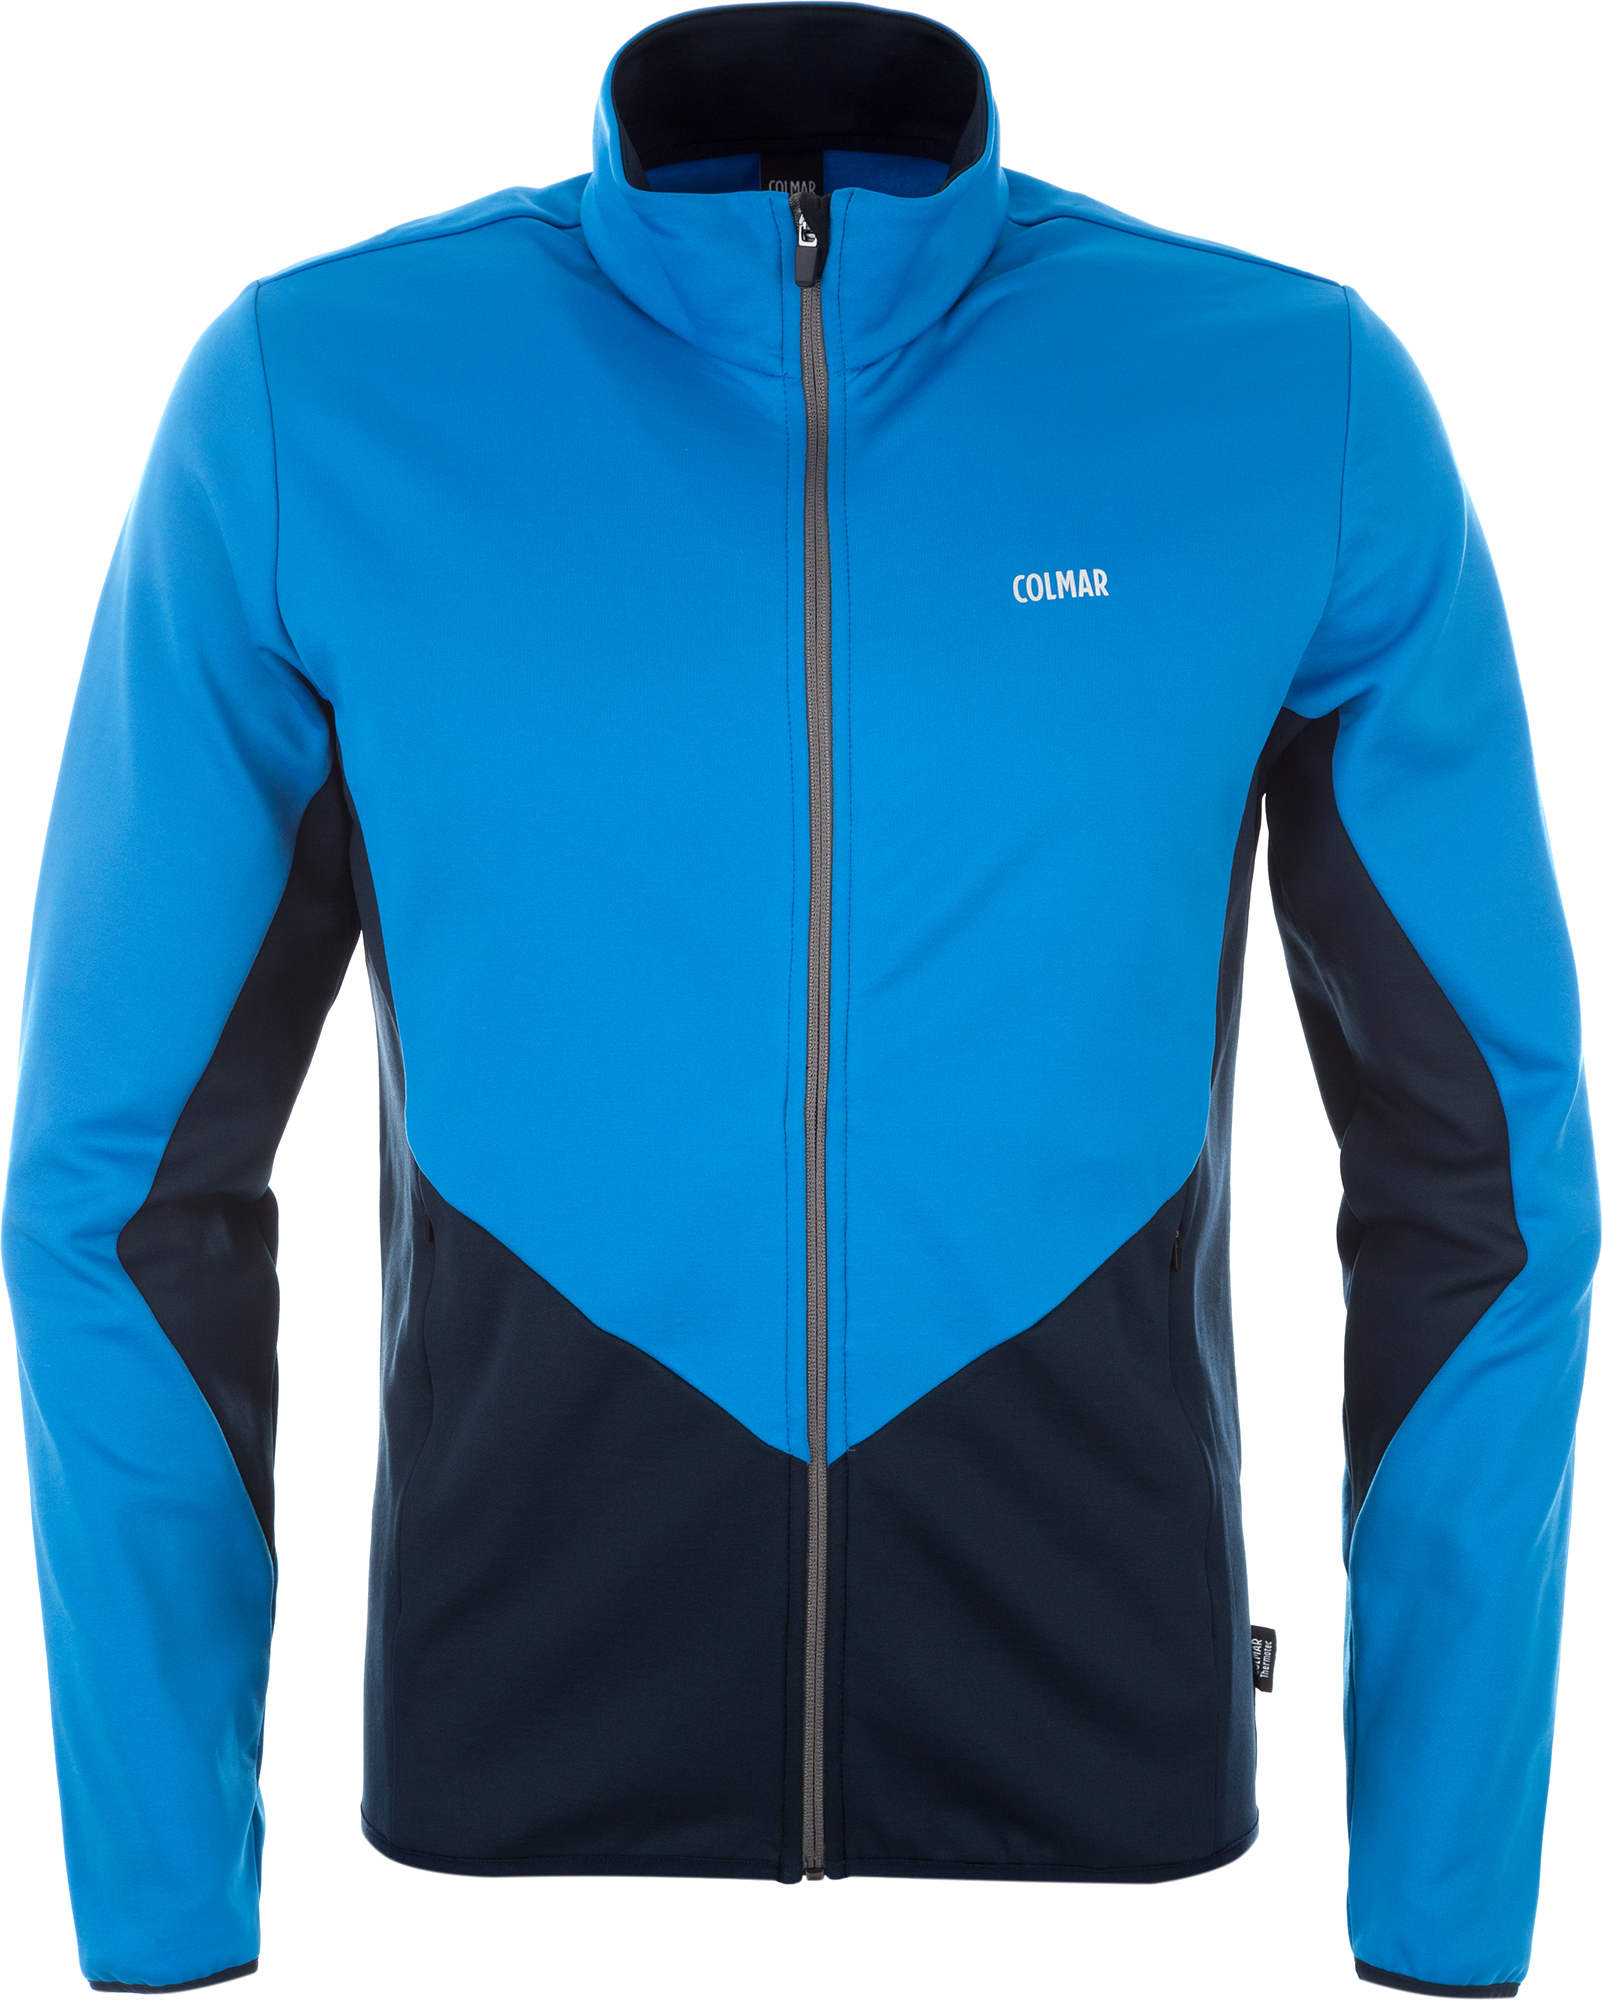 Colmar Джемпер мужской Colmar Stretch Fleece